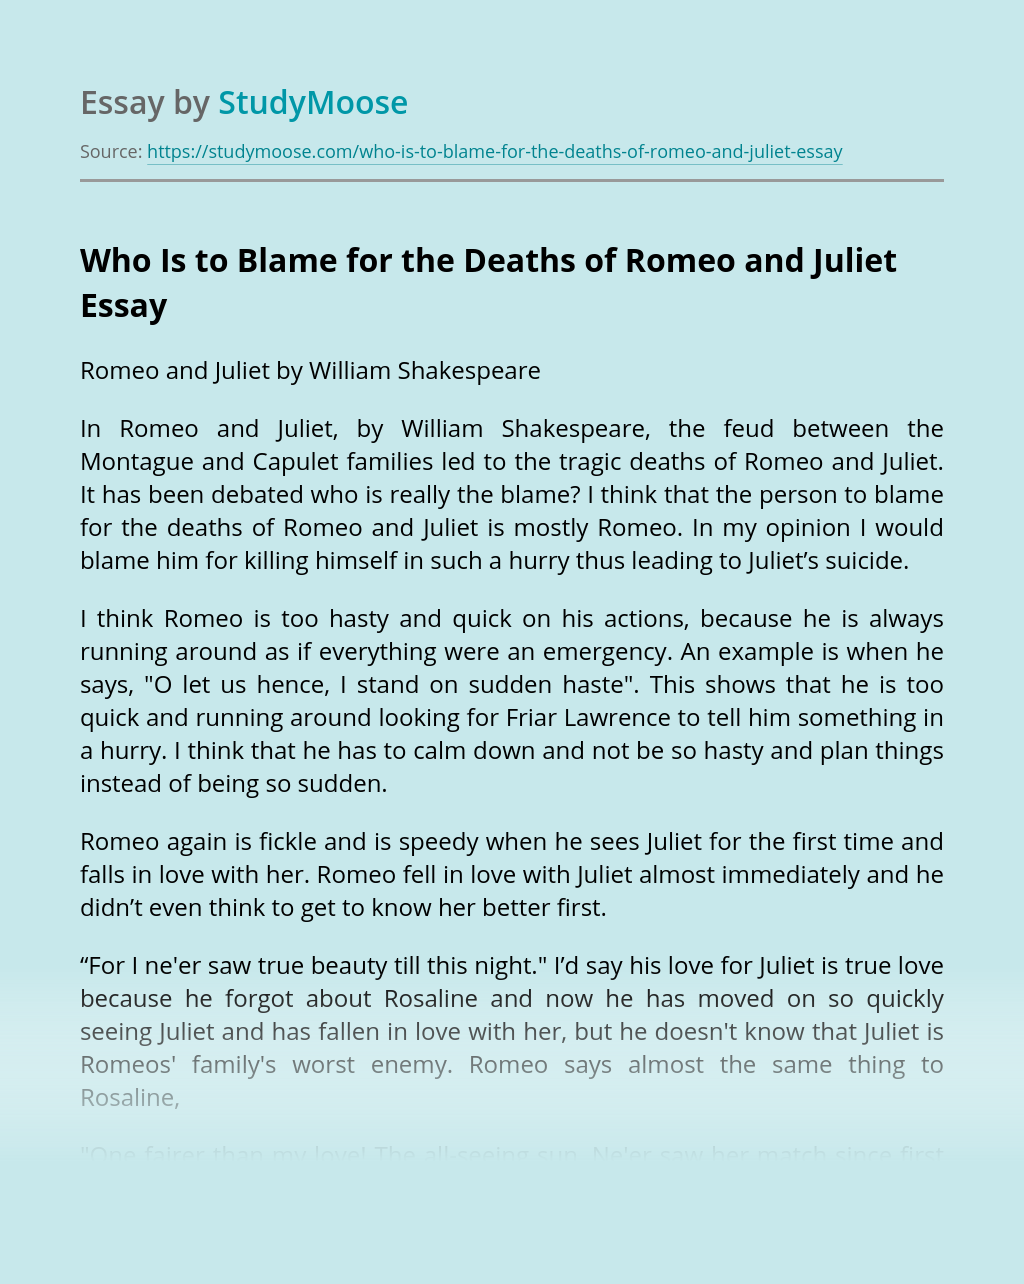 Who Is to Blame for the Deaths of Romeo and Juliet